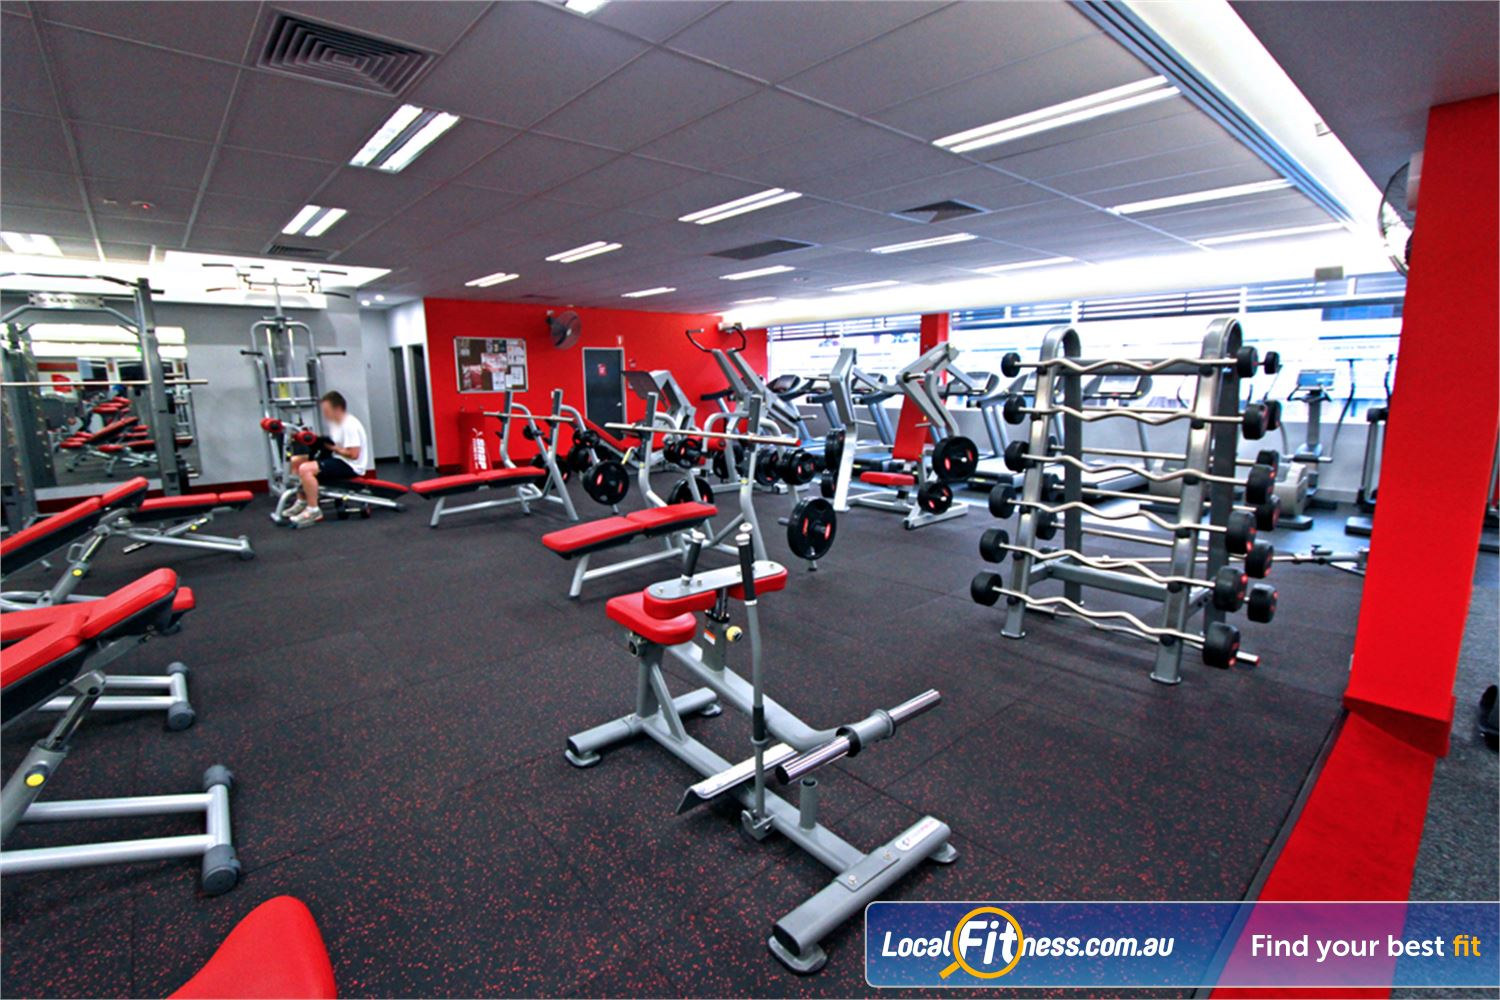 Snap Fitness Croydon 24 hour Snap Fitness access means you can avoid crowded gyms.